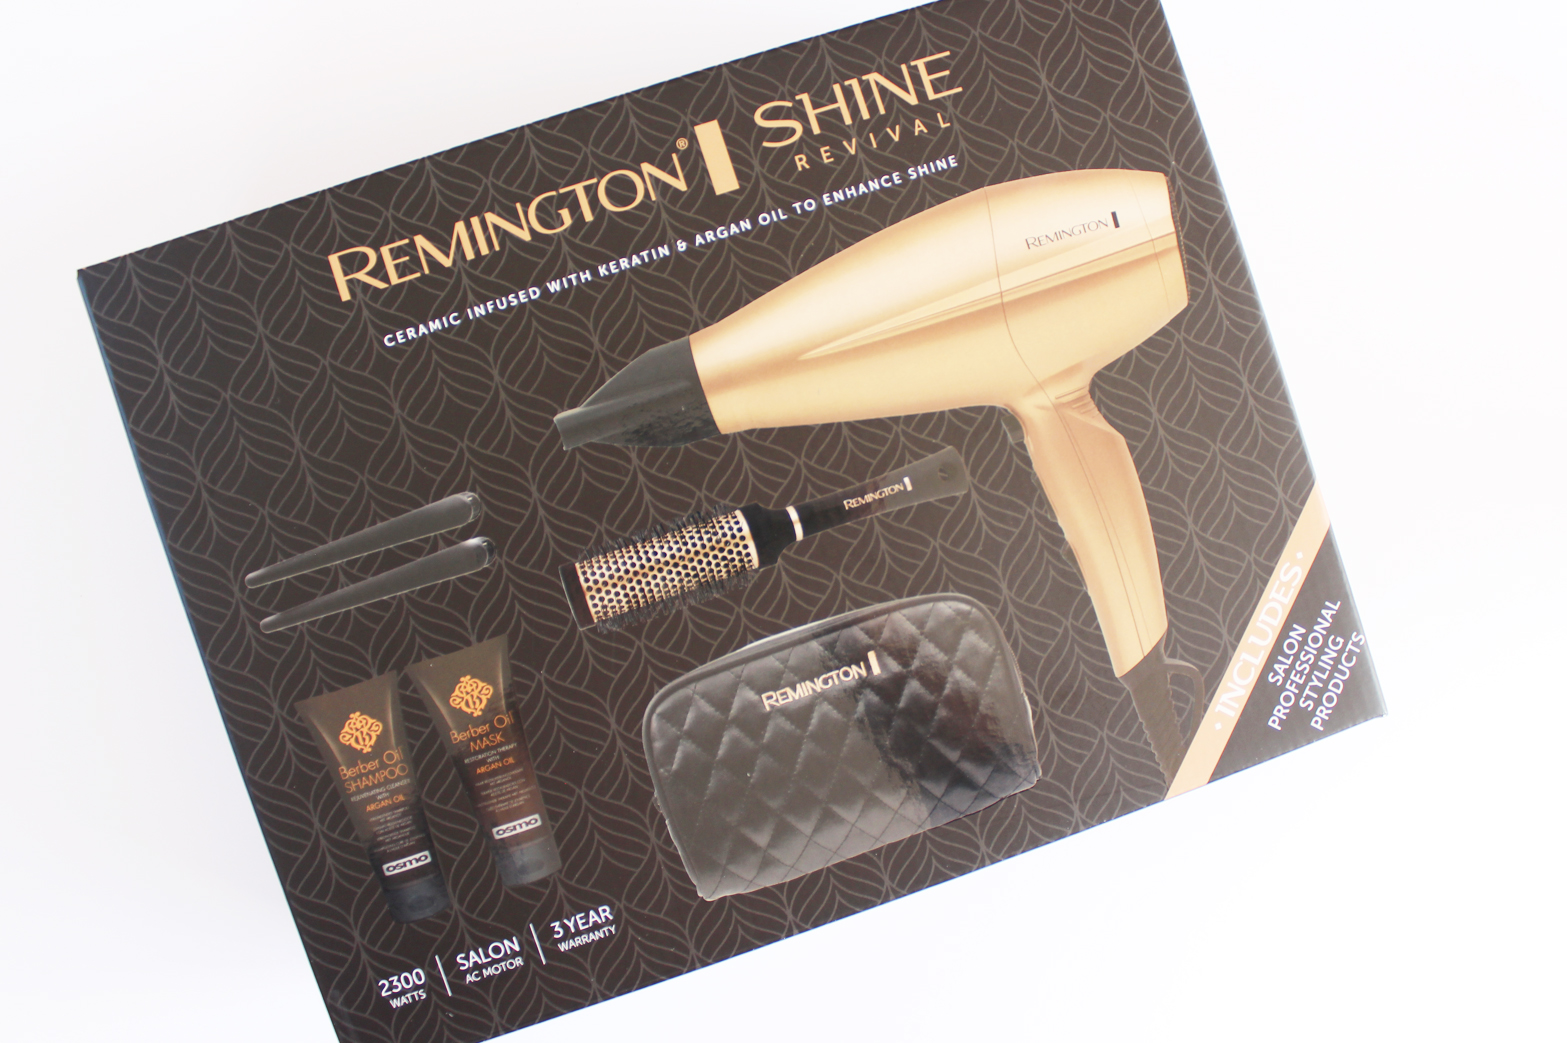 REMINGTON | Shine Revival Hair Dryer Review - CassandraMyee